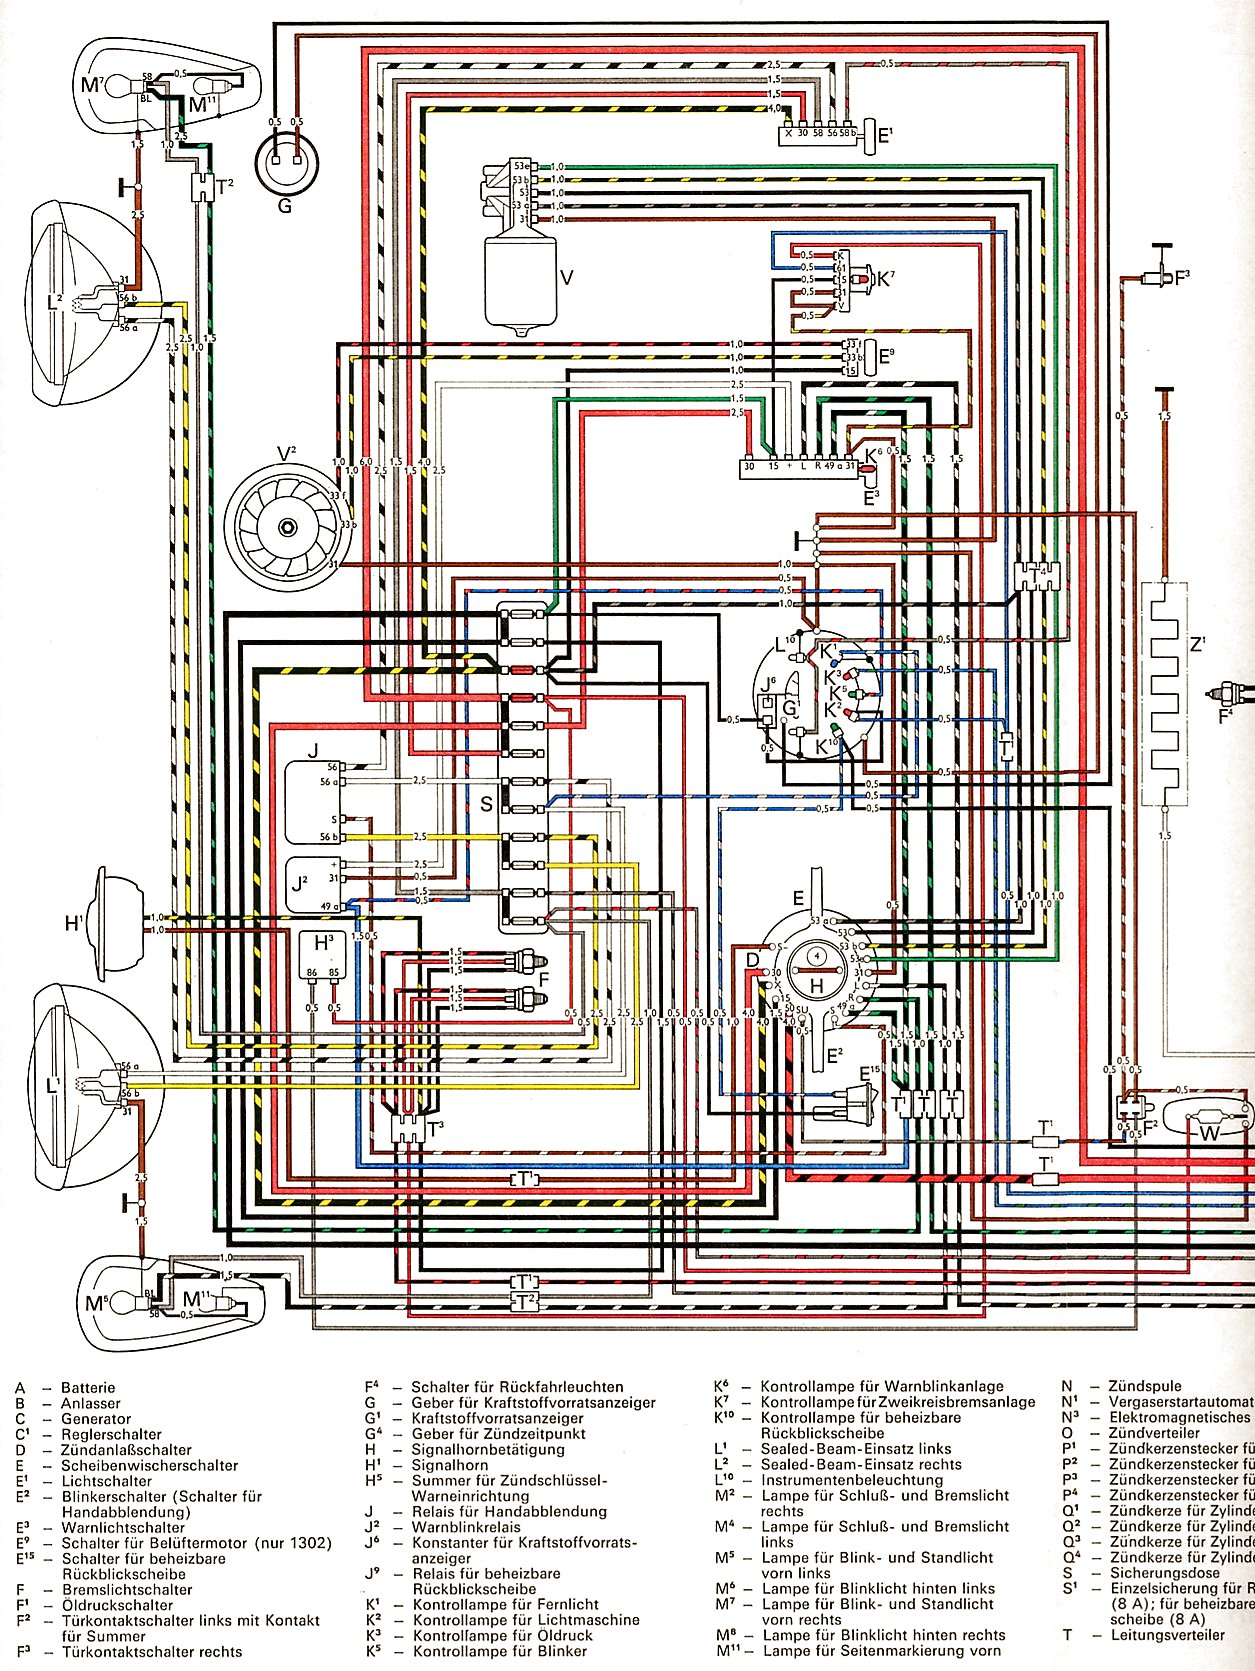 1300_and_1302_USA_from_August_1971 1 vw bug wiring 1969 vw starter wiring diagram \u2022 wiring diagrams j 1971 vw bus wiring diagram at nearapp.co